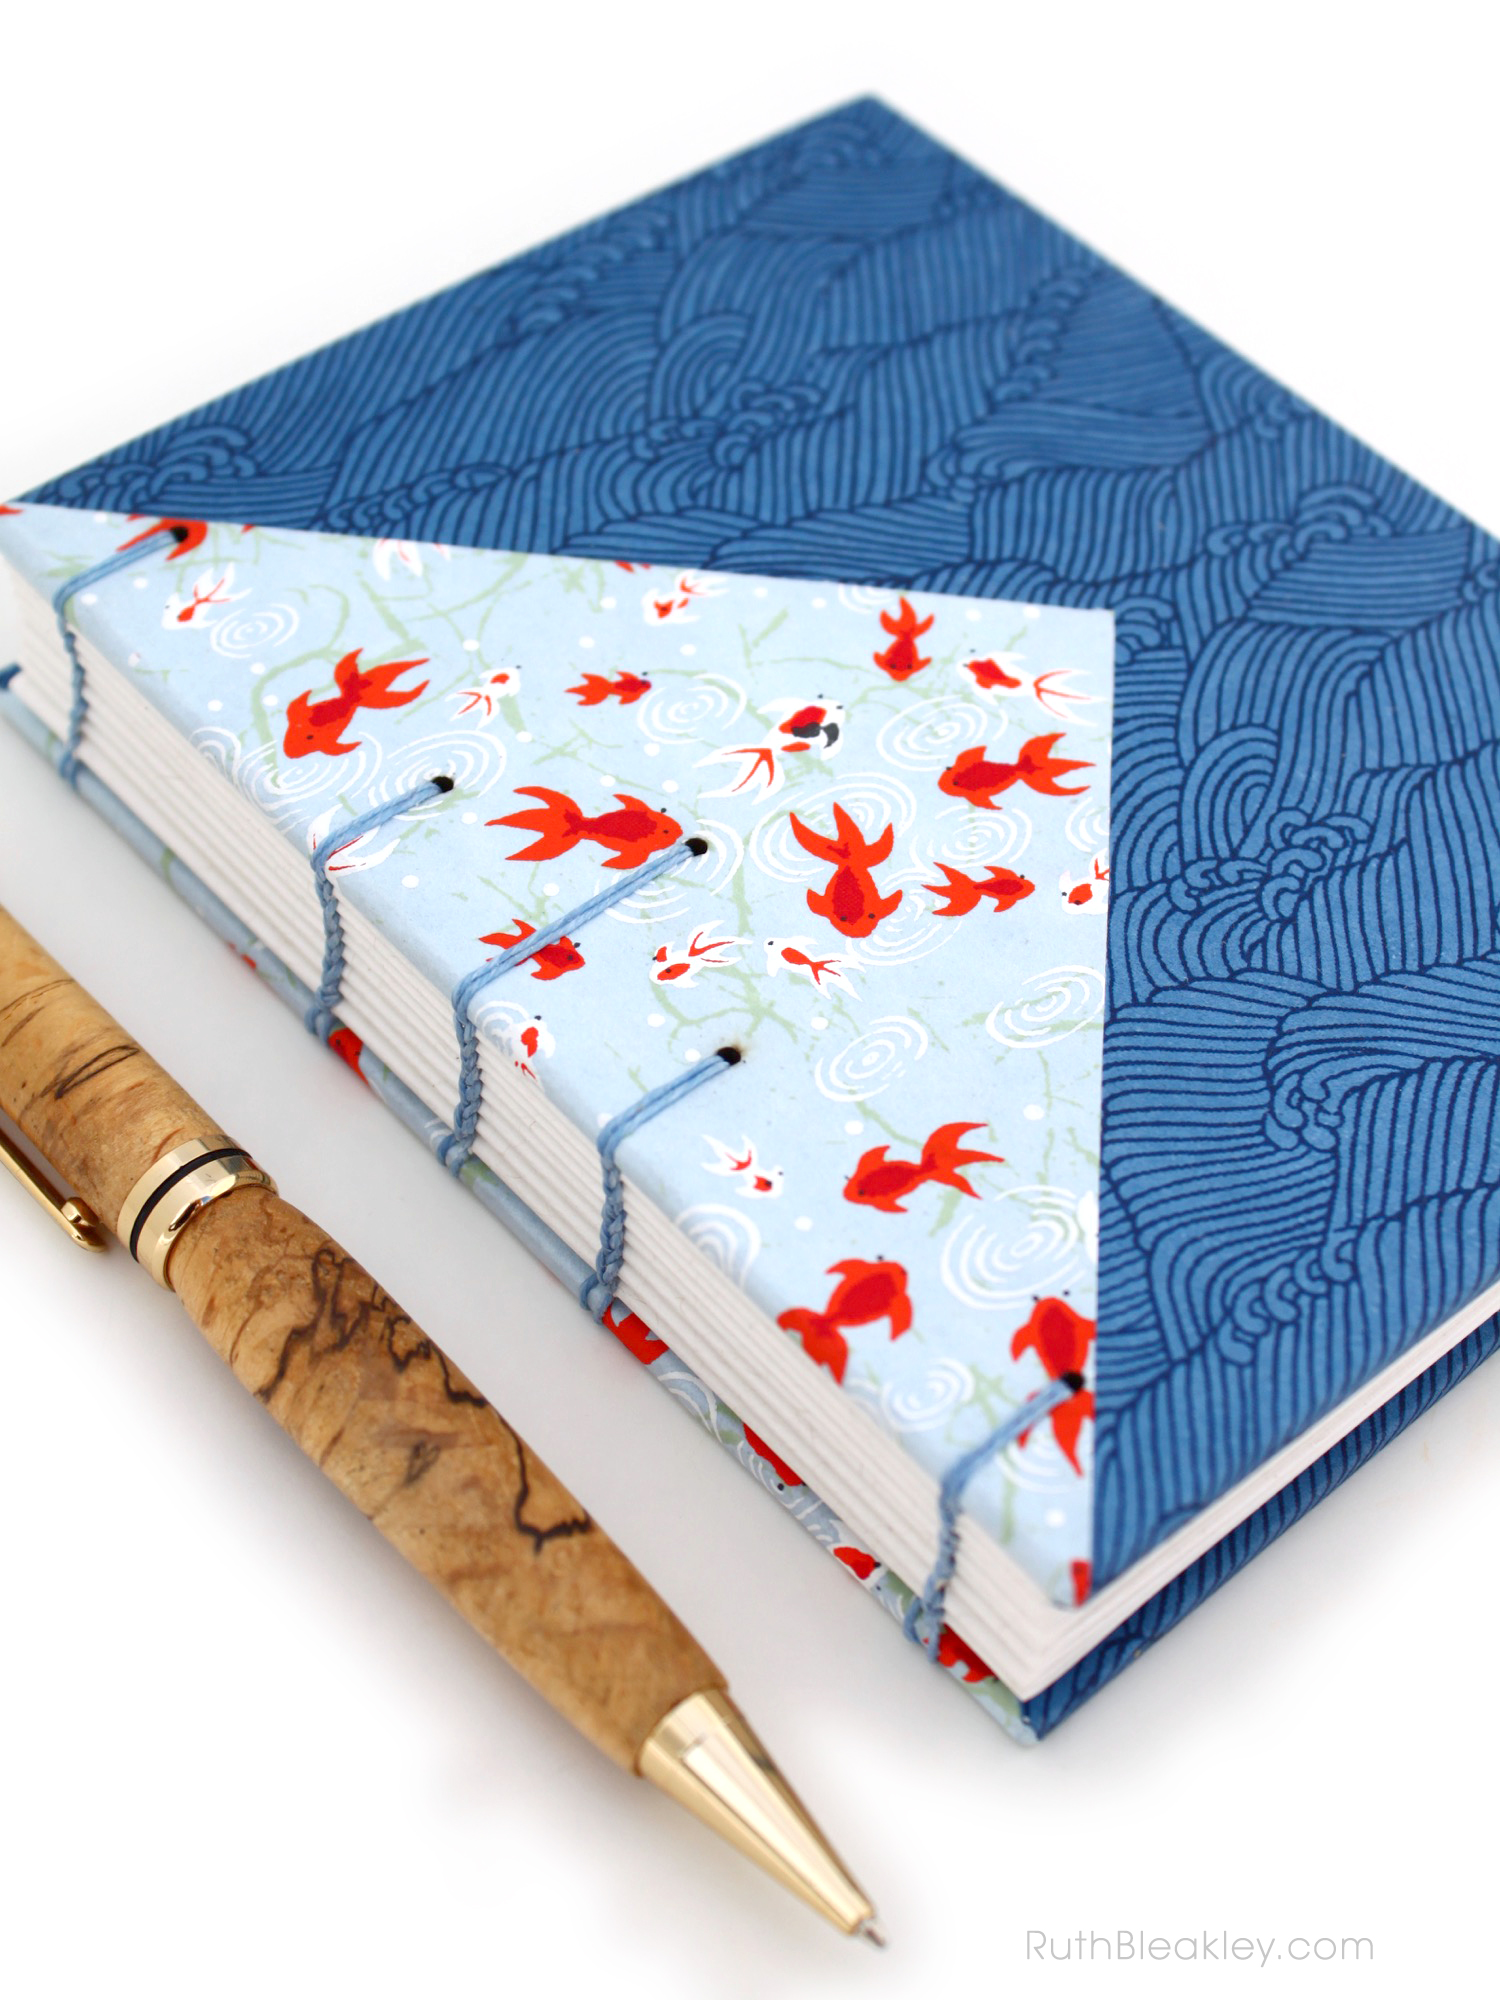 Chiyogami Twin Journals with Colorful Triangle Inlays handmade by Ruth Bleakley - 28